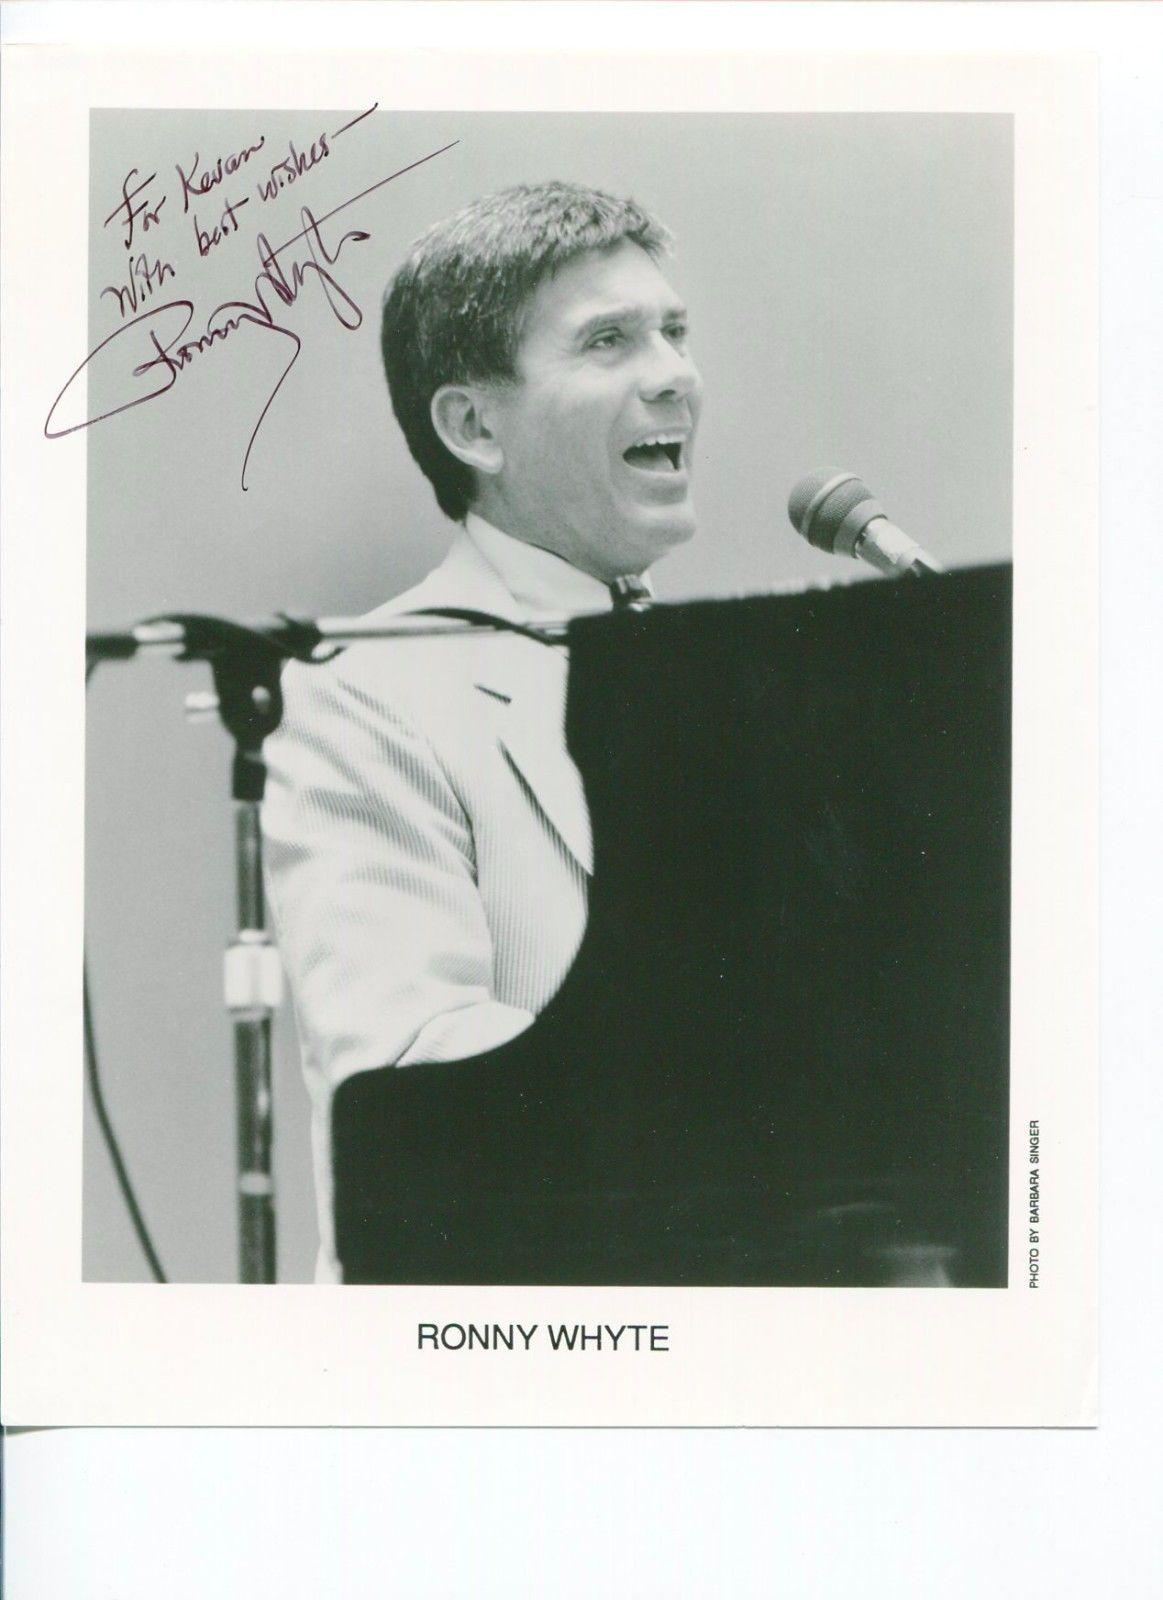 Ronny Whyte Jazz Pianist Singer Composer Signed Autograph Photo